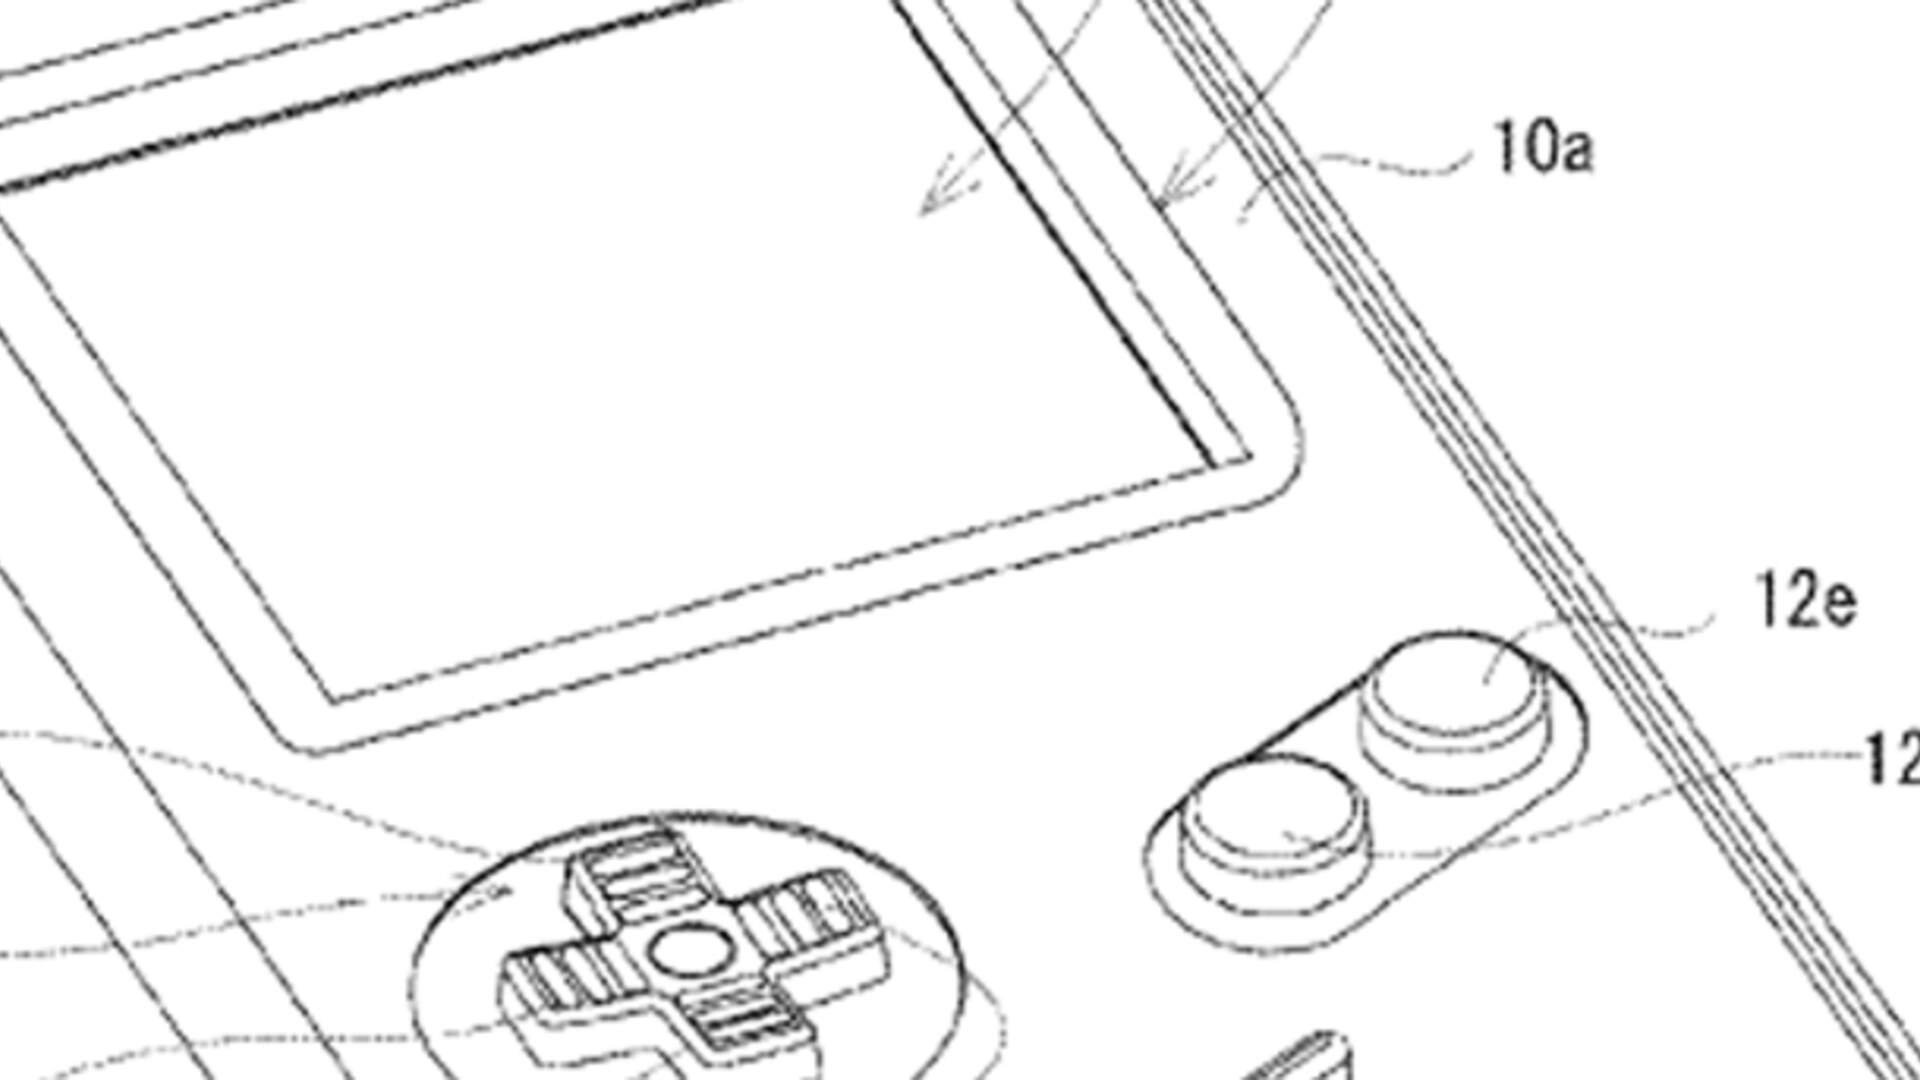 Nintendo Might be Working on a Way to Bring Game Boy Games to Smartphones Based on New Patent